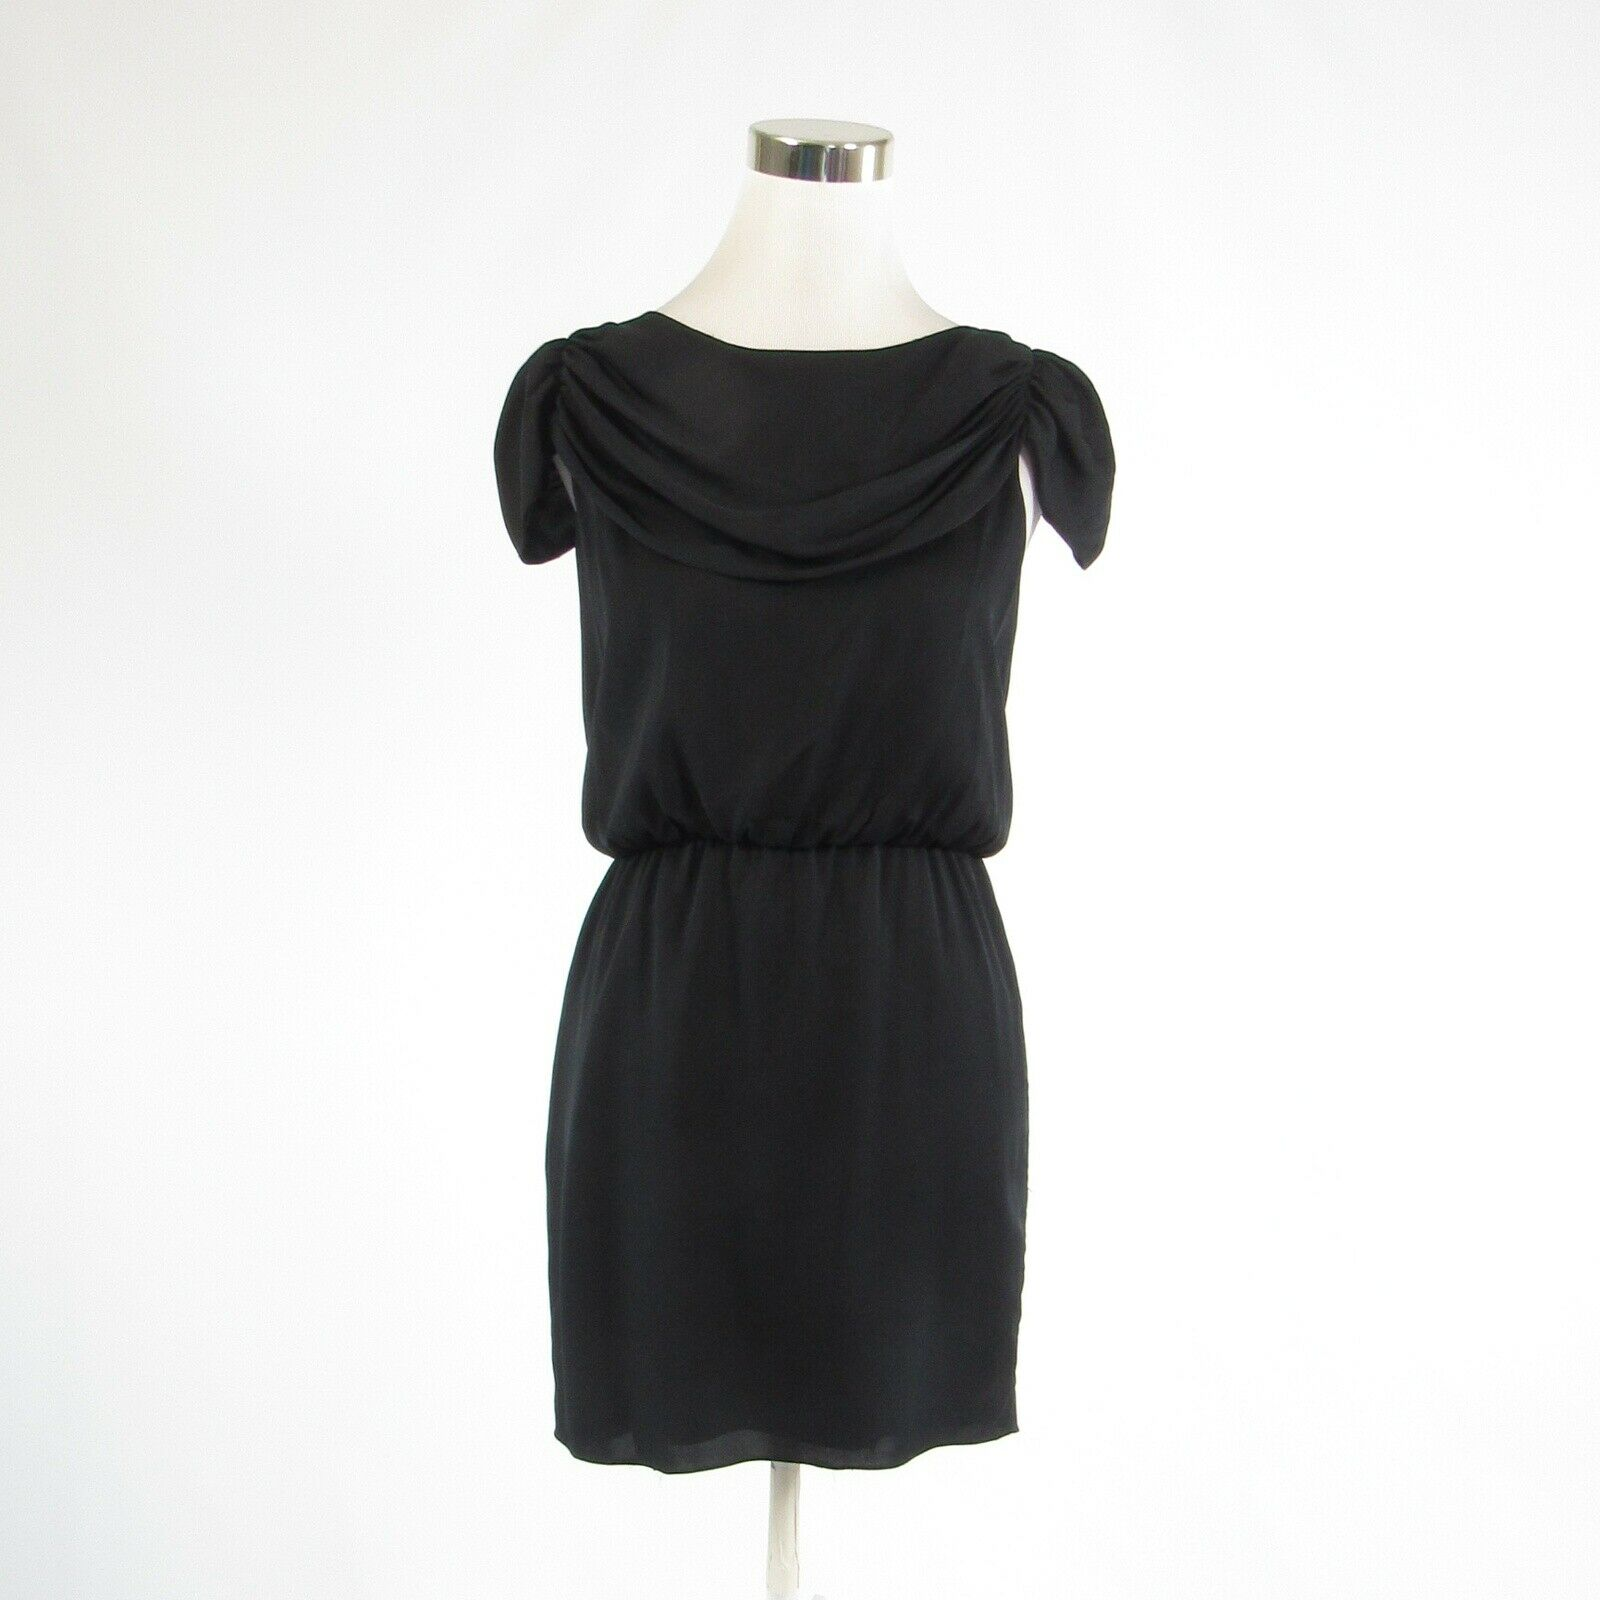 Black silk blend ALICE and OLIVIA stretch cap sleeve sheath dress S-Newish